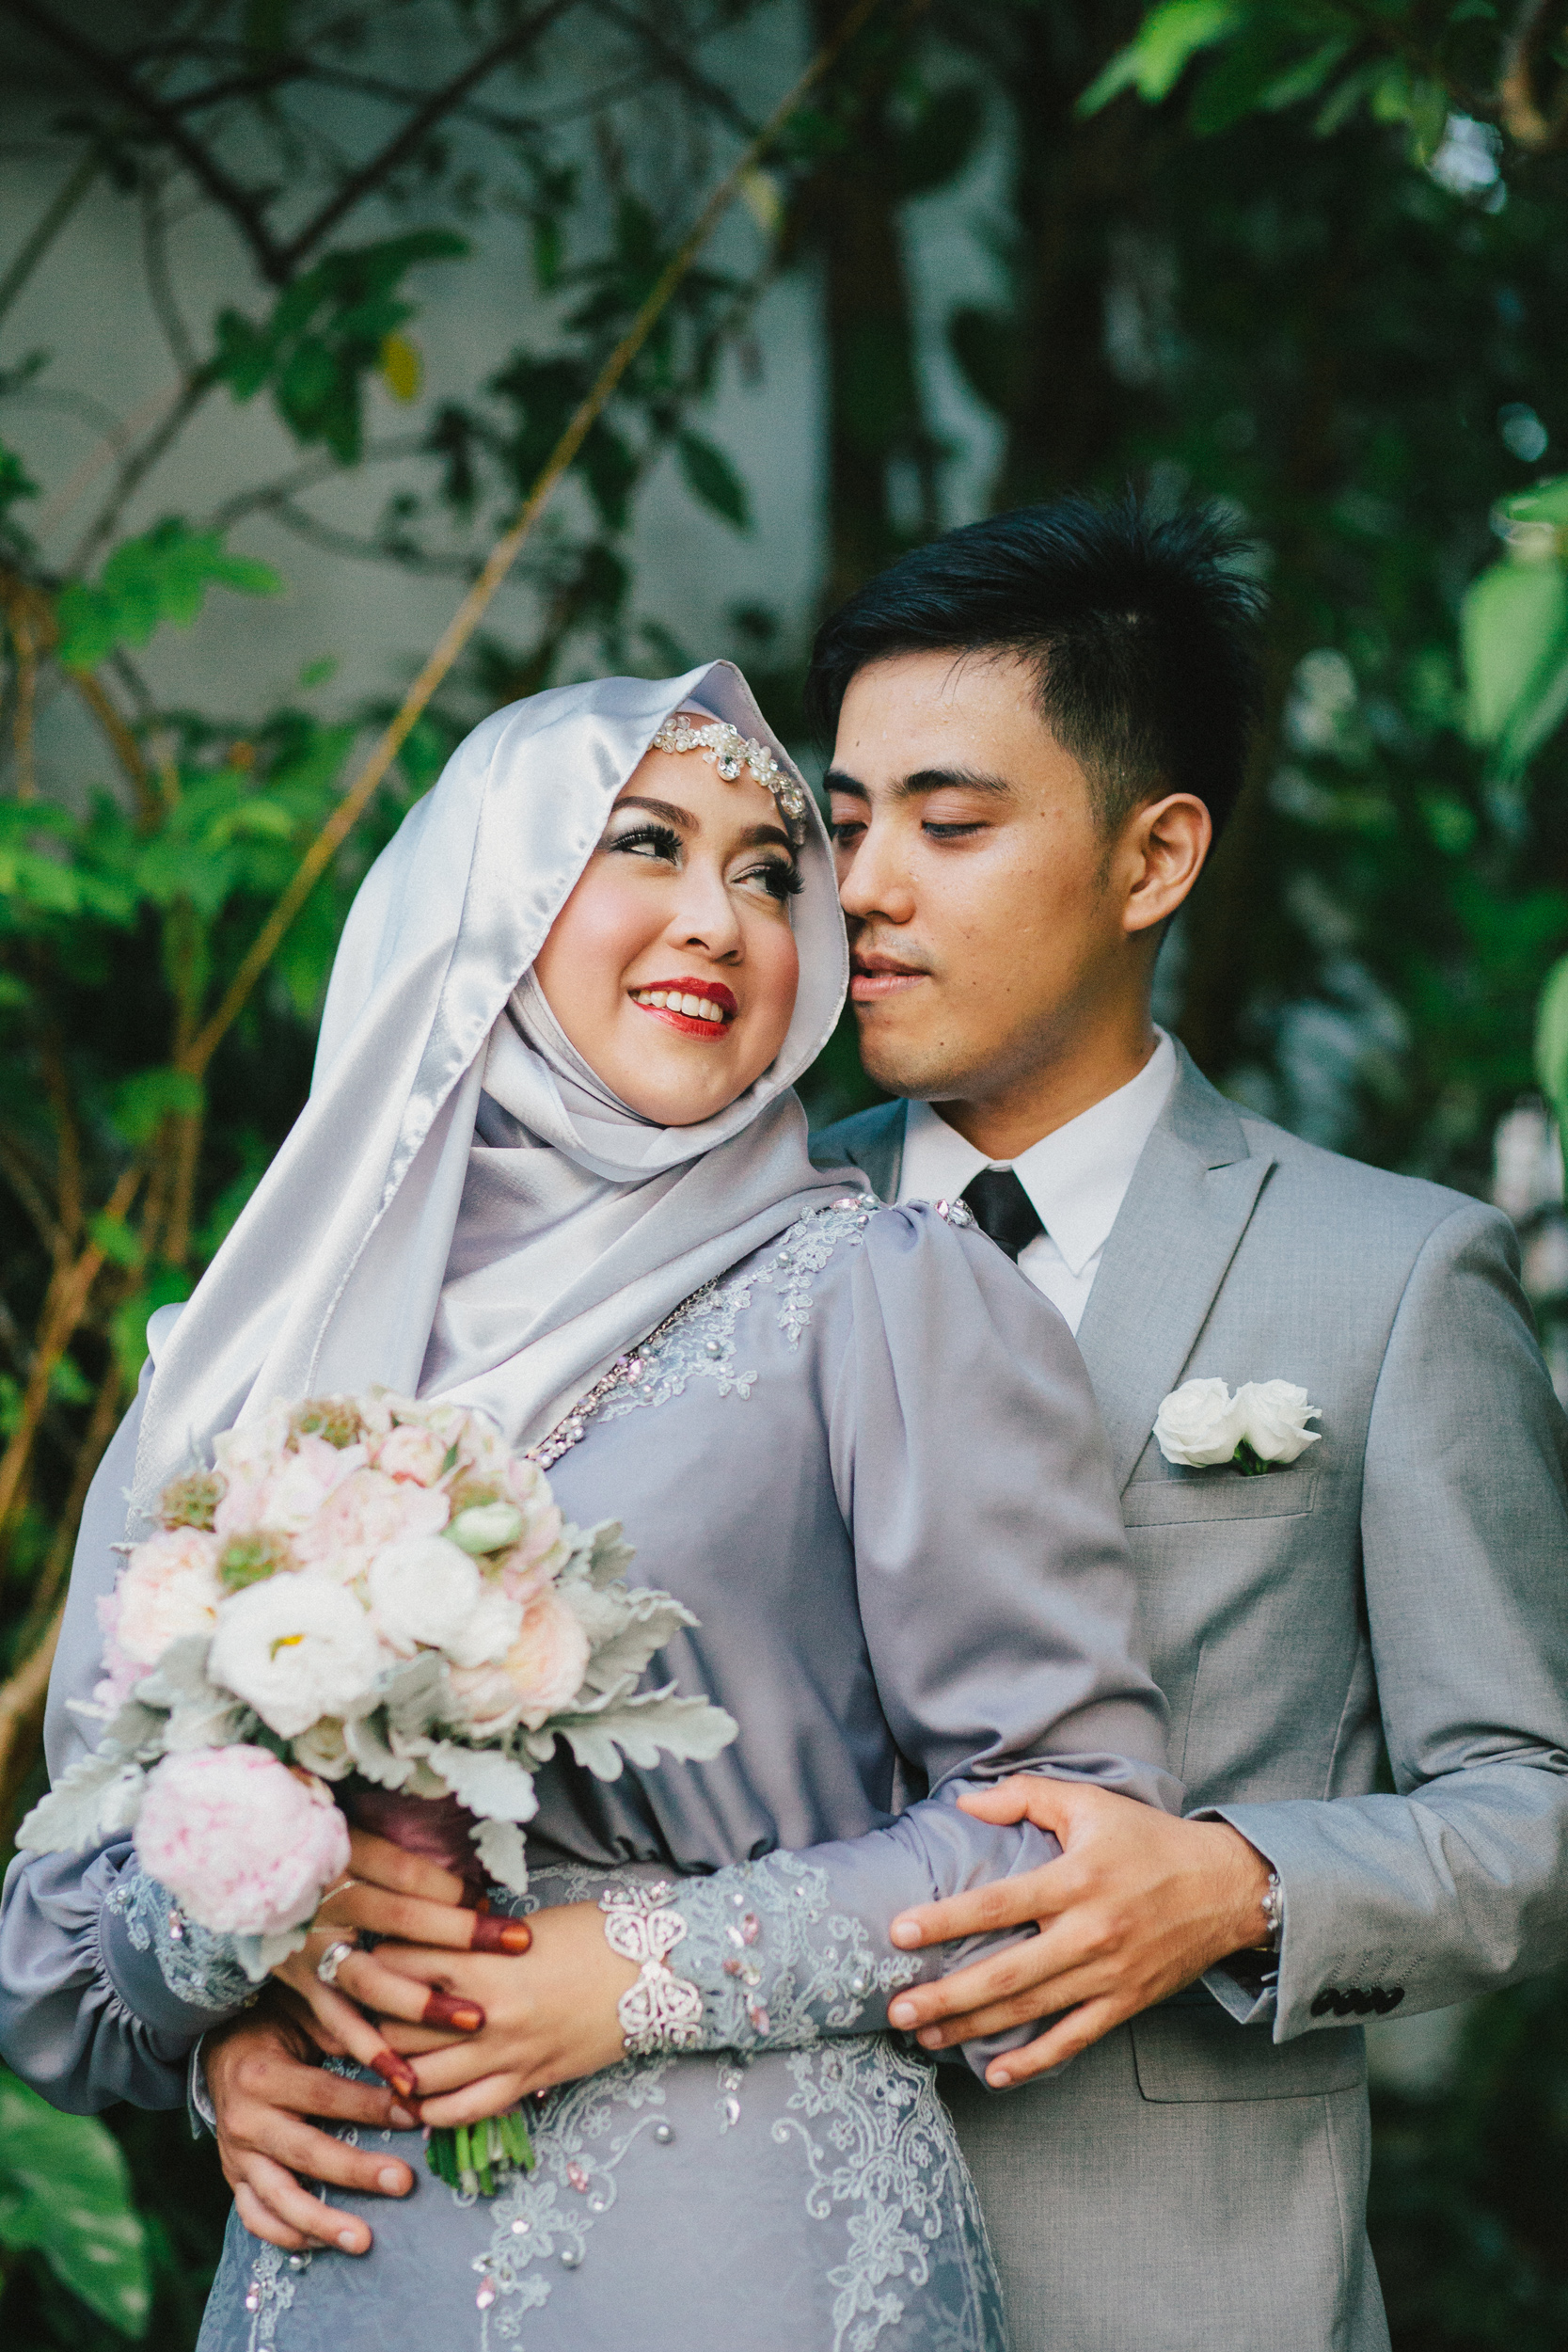 singapore-wedding-photographer-wemadethese-aisyah-helmi-66.jpg